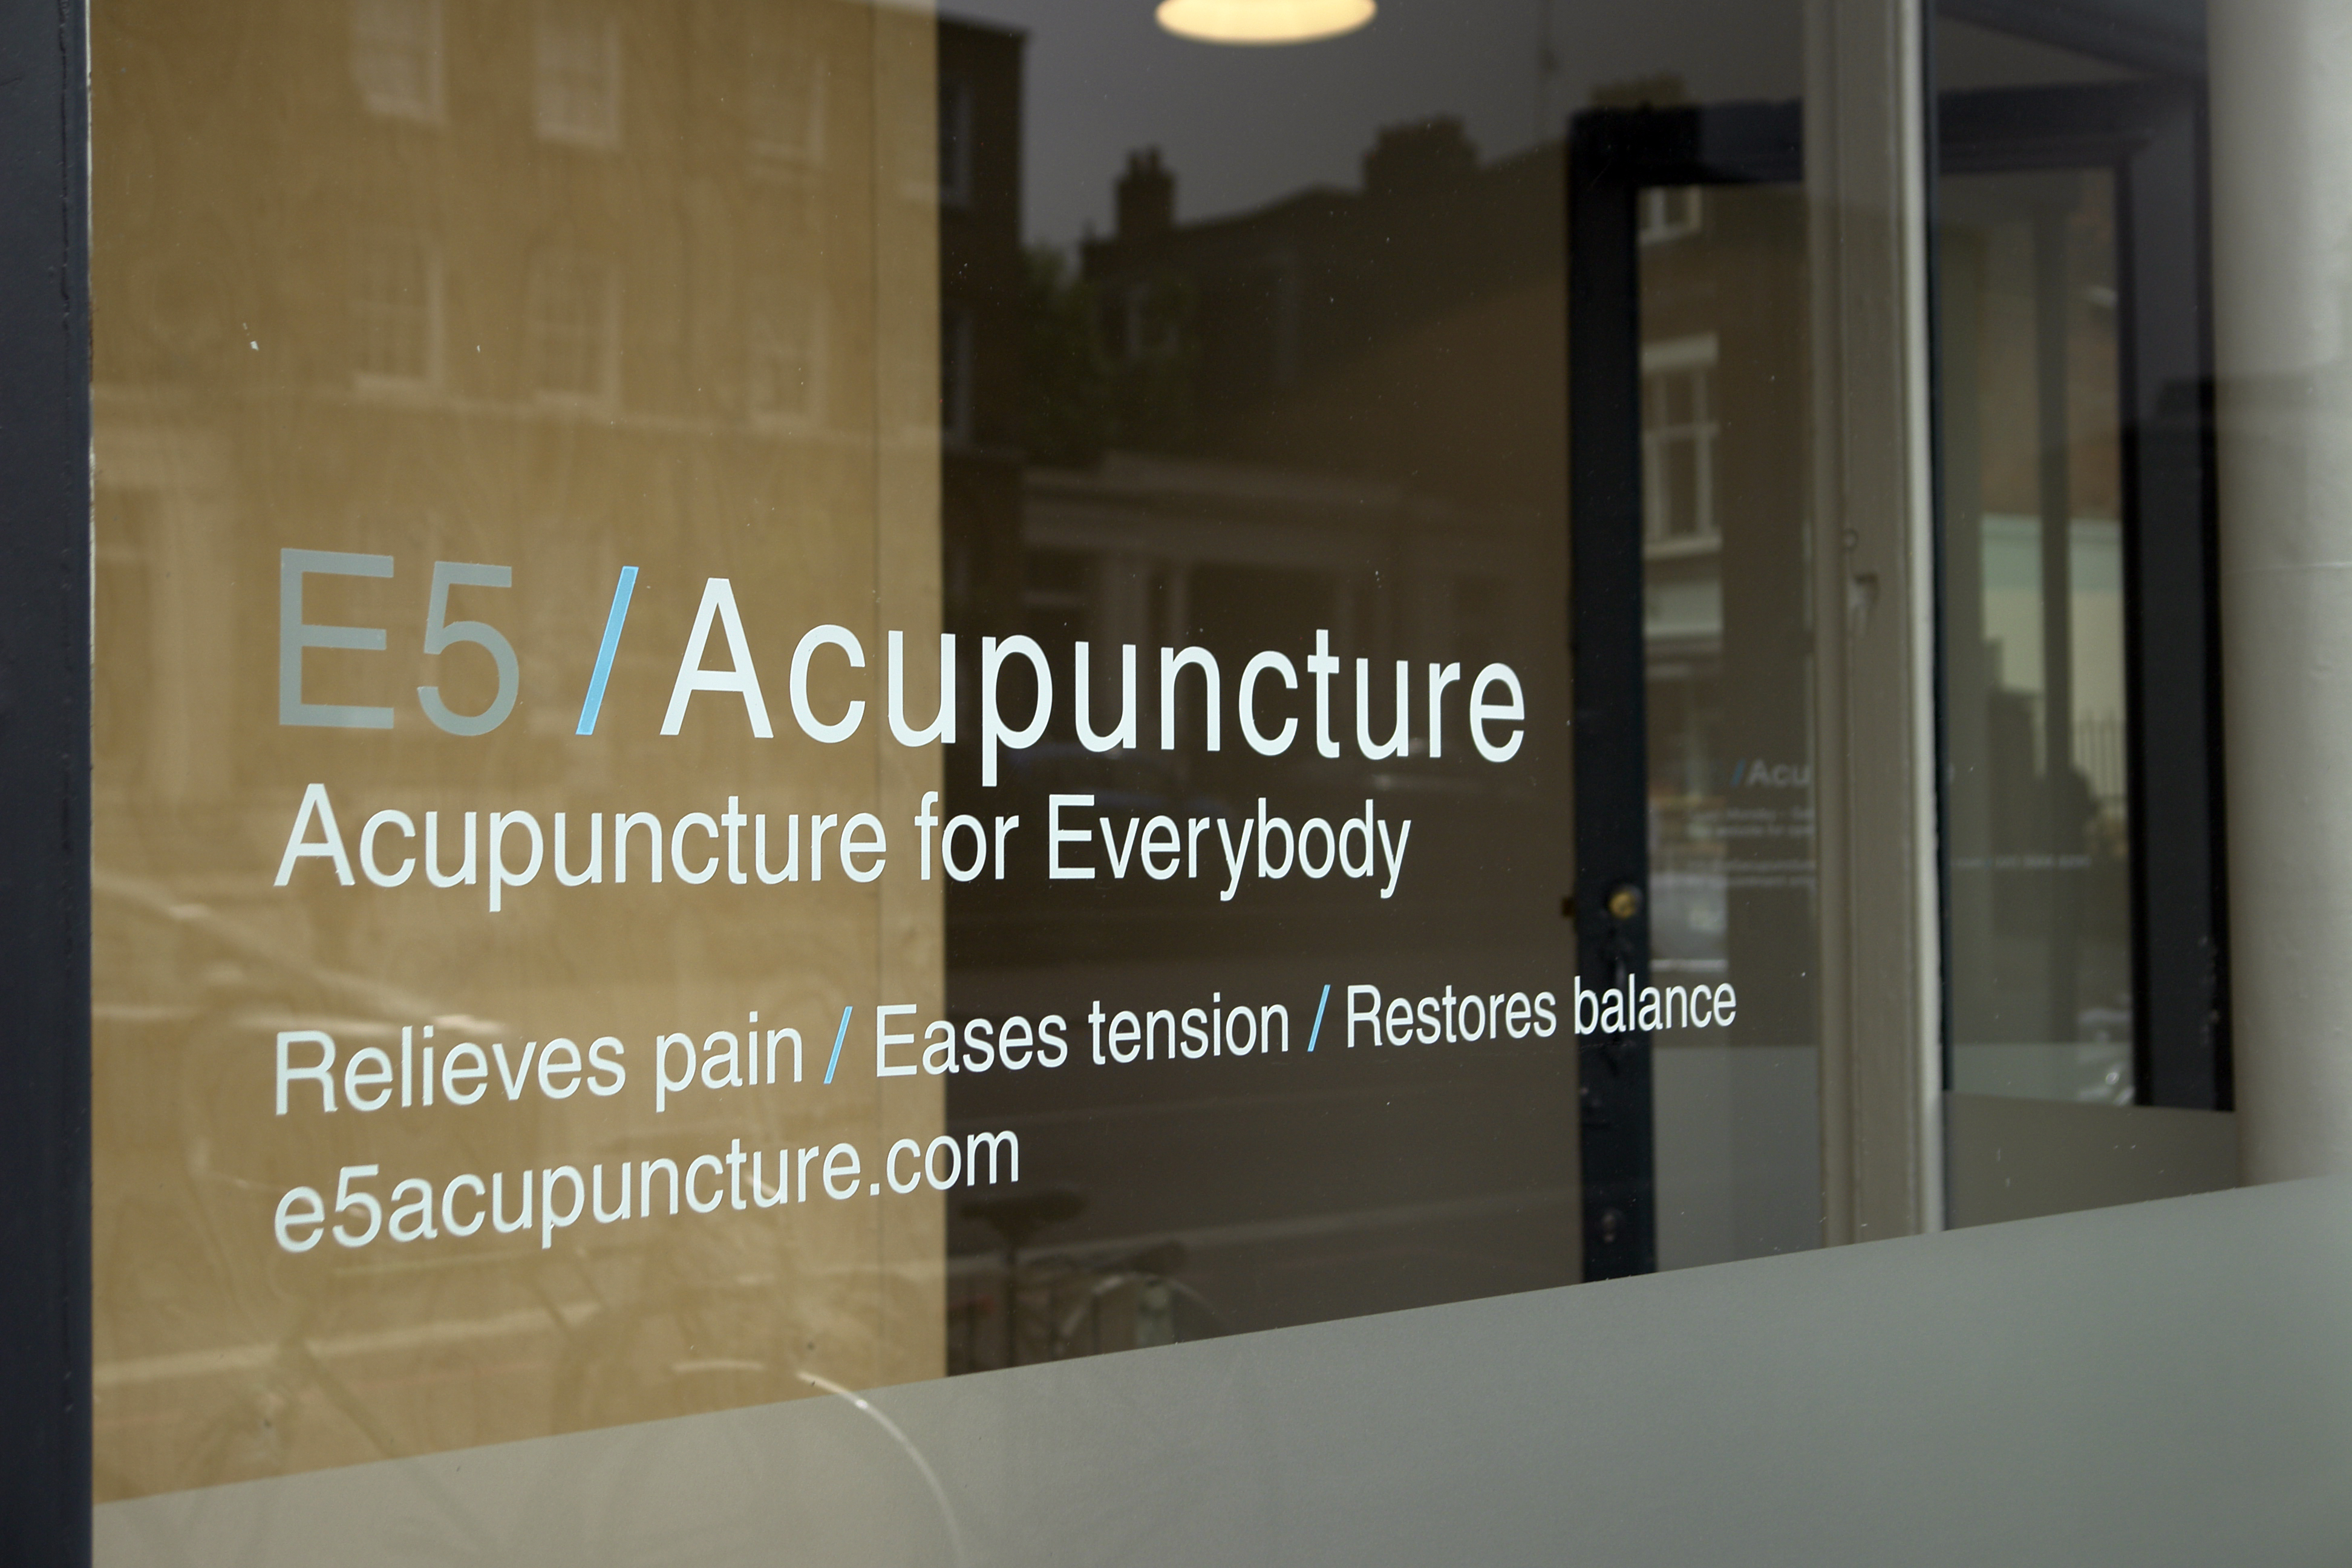 E5 Acupuncture